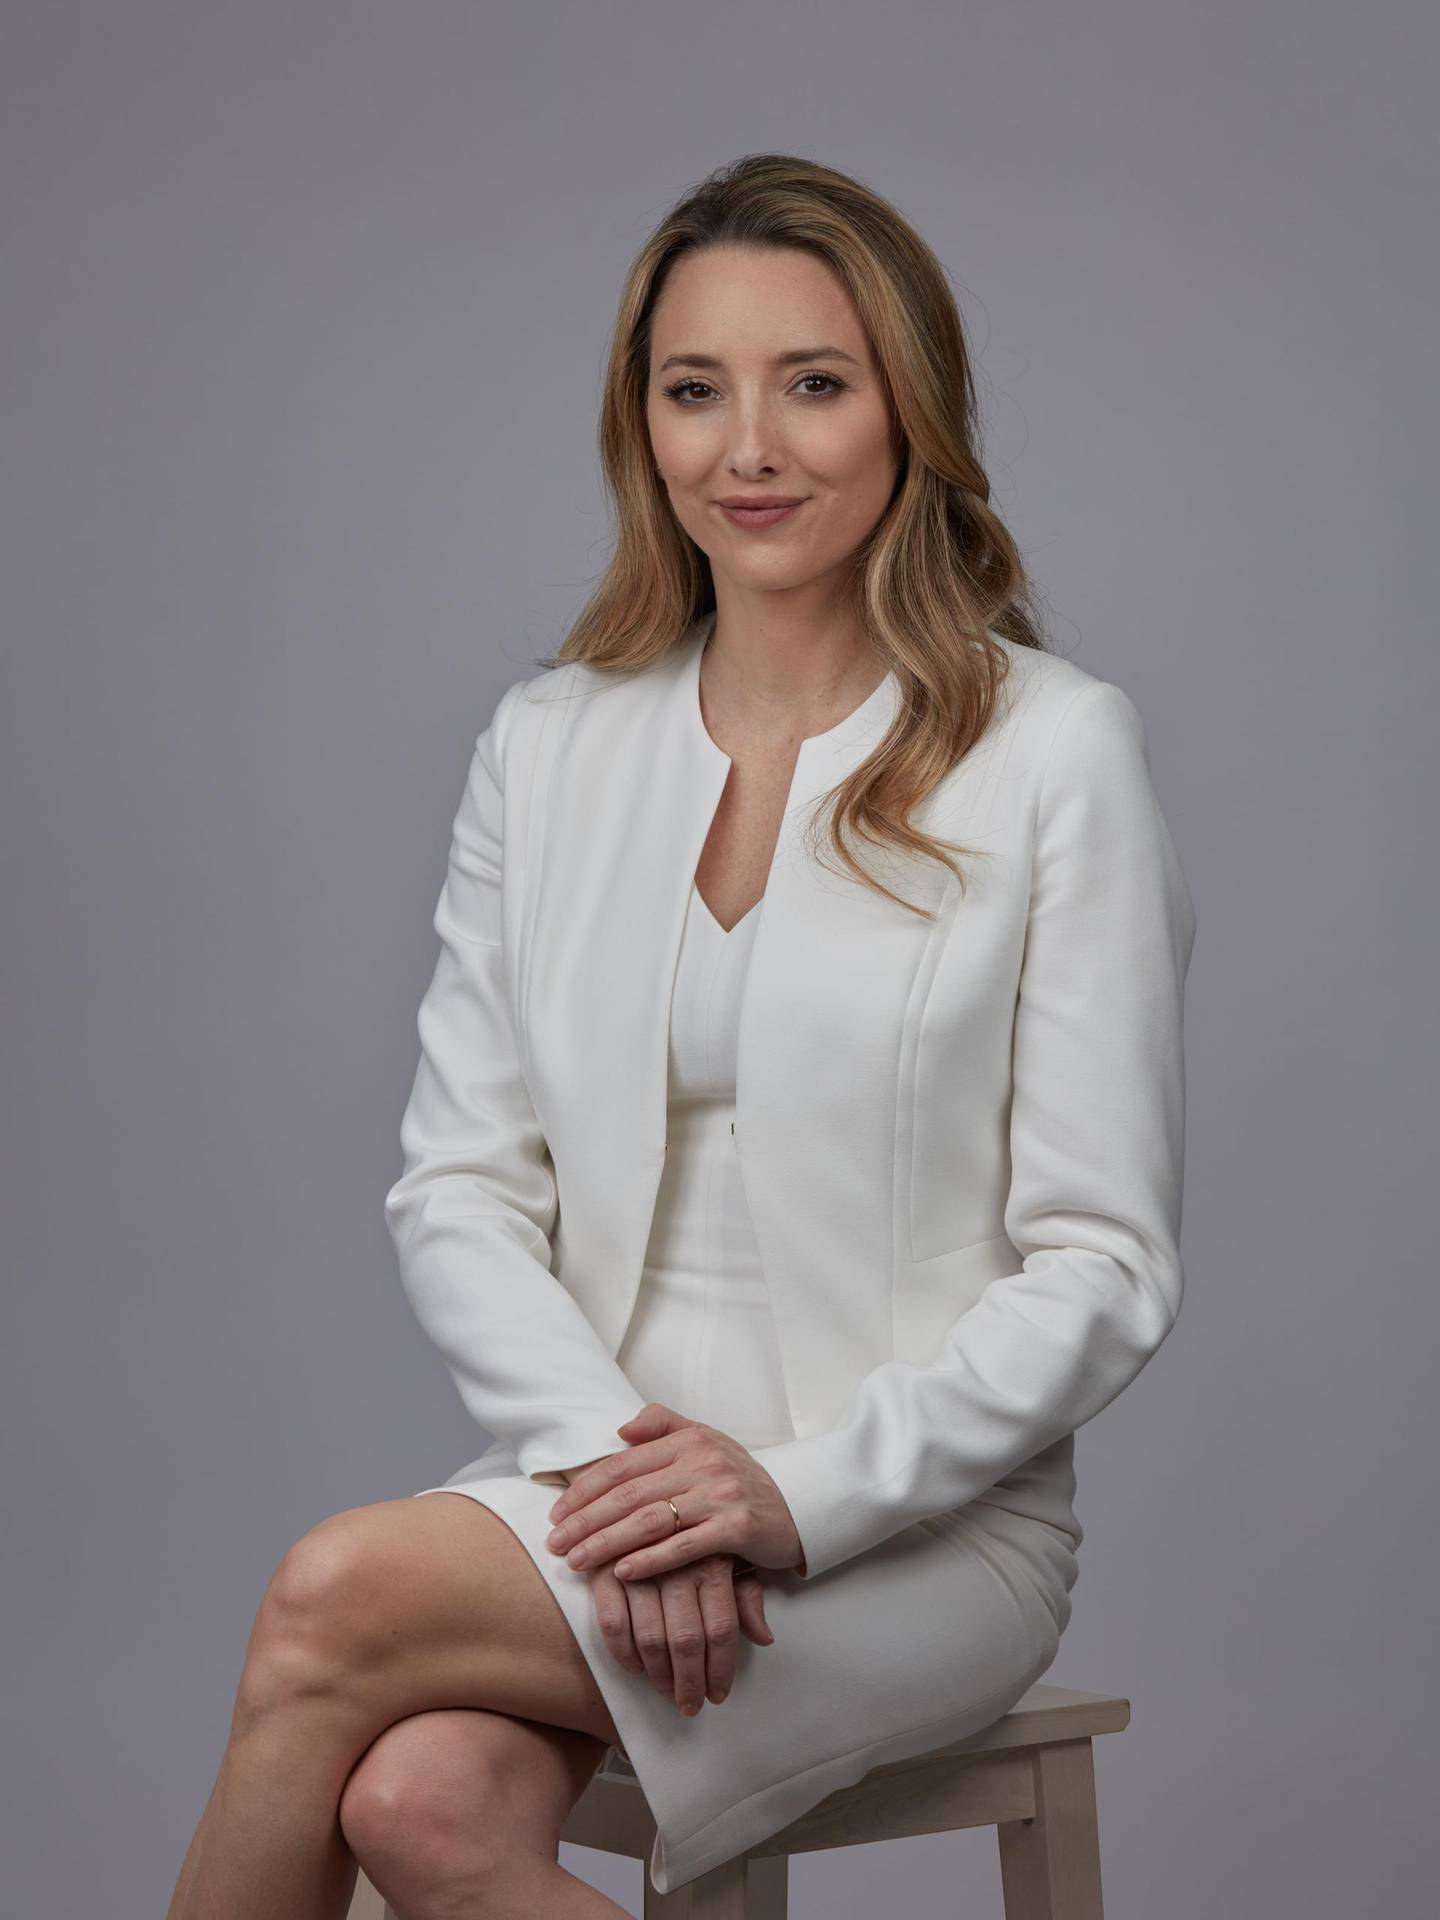 Veronica Cotdemiey is the chief executive of Citizenship Invest. Courtesy Citizenship Invest